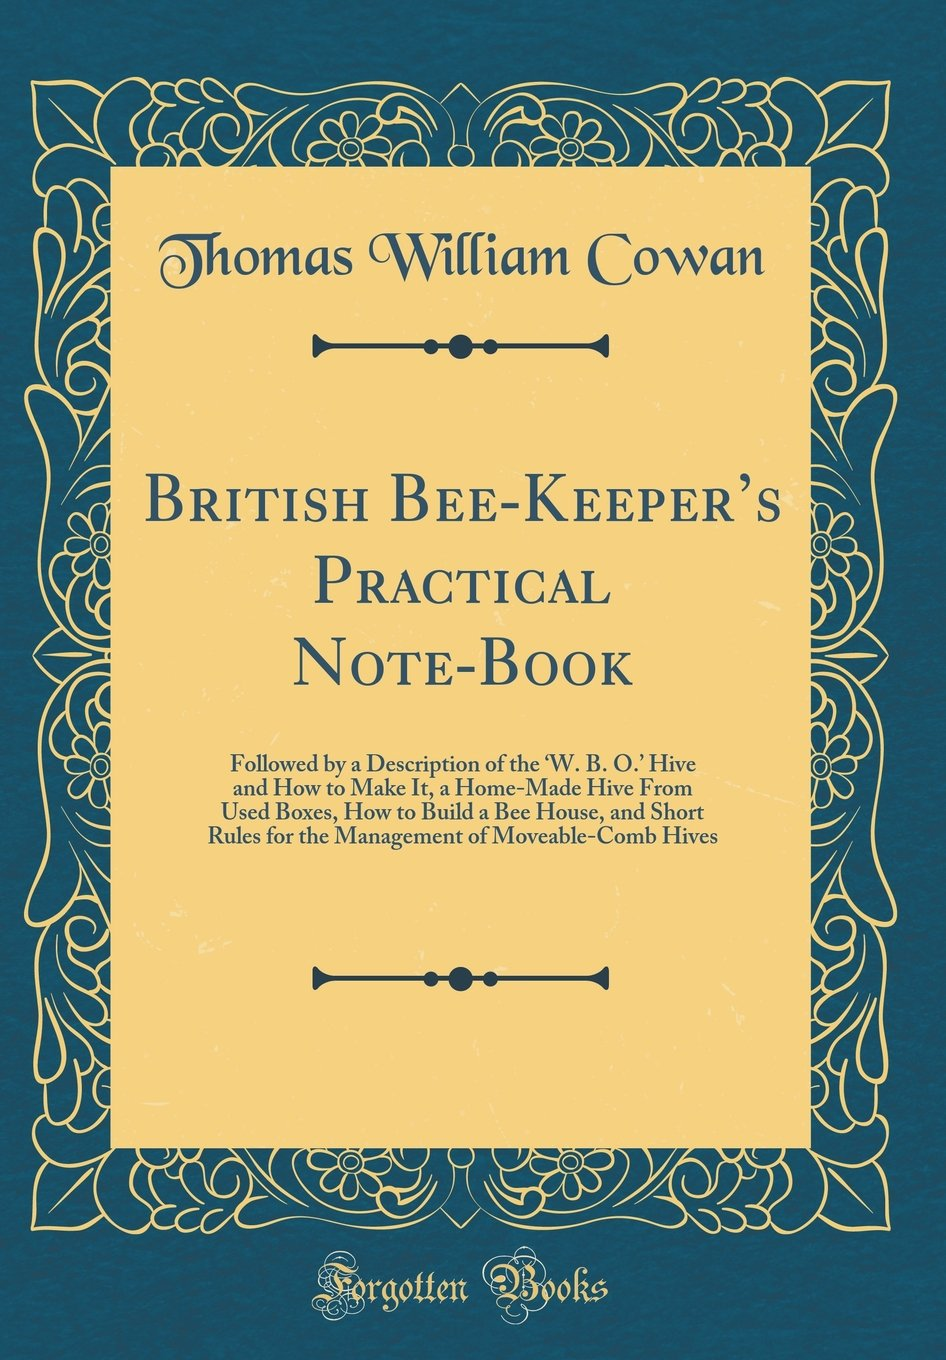 British Bee-Keeper's Practical Note-Book: Followed by a Description of the 'W. B. O.' Hive and How to Make It, a Home-Made Hive From Used Boxes, How ... of Moveable-Comb Hives (Classic Reprint) pdf